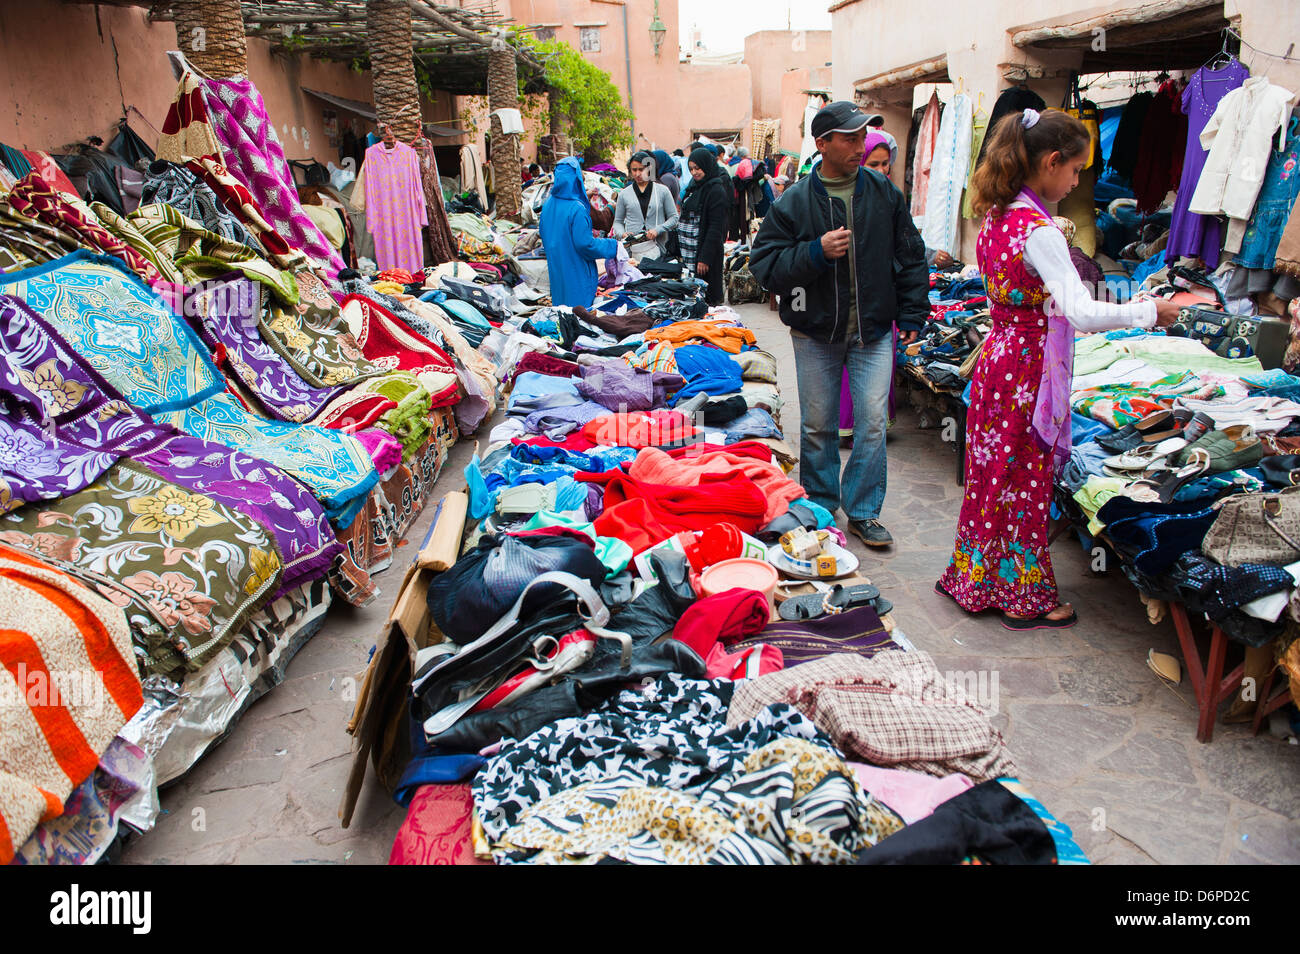 Clothes Stalls In The Souks Of The Old Medina Of Marrakech